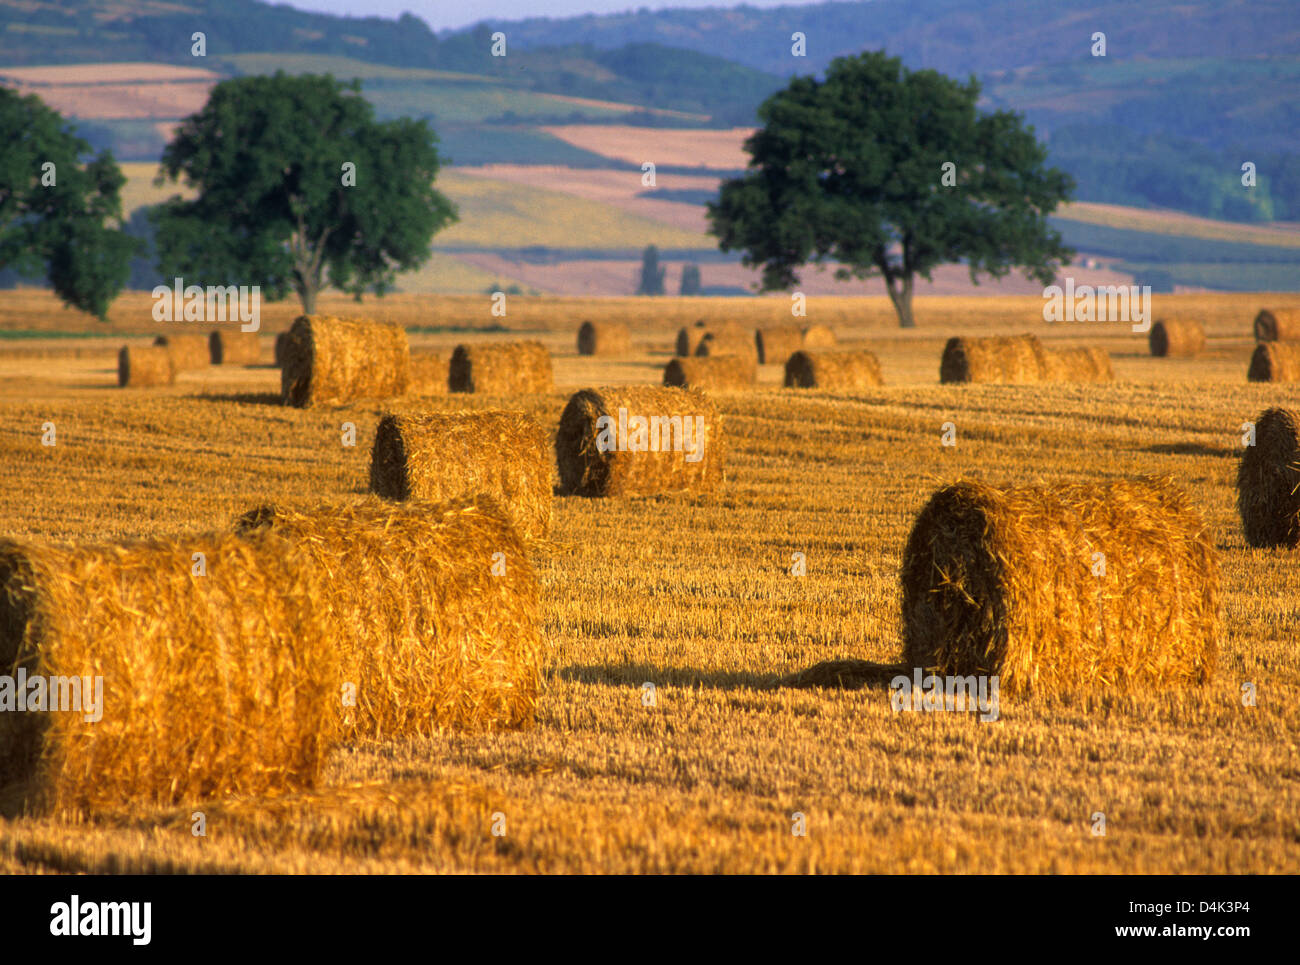 Hay bales in Auvergne, France - Stock Image